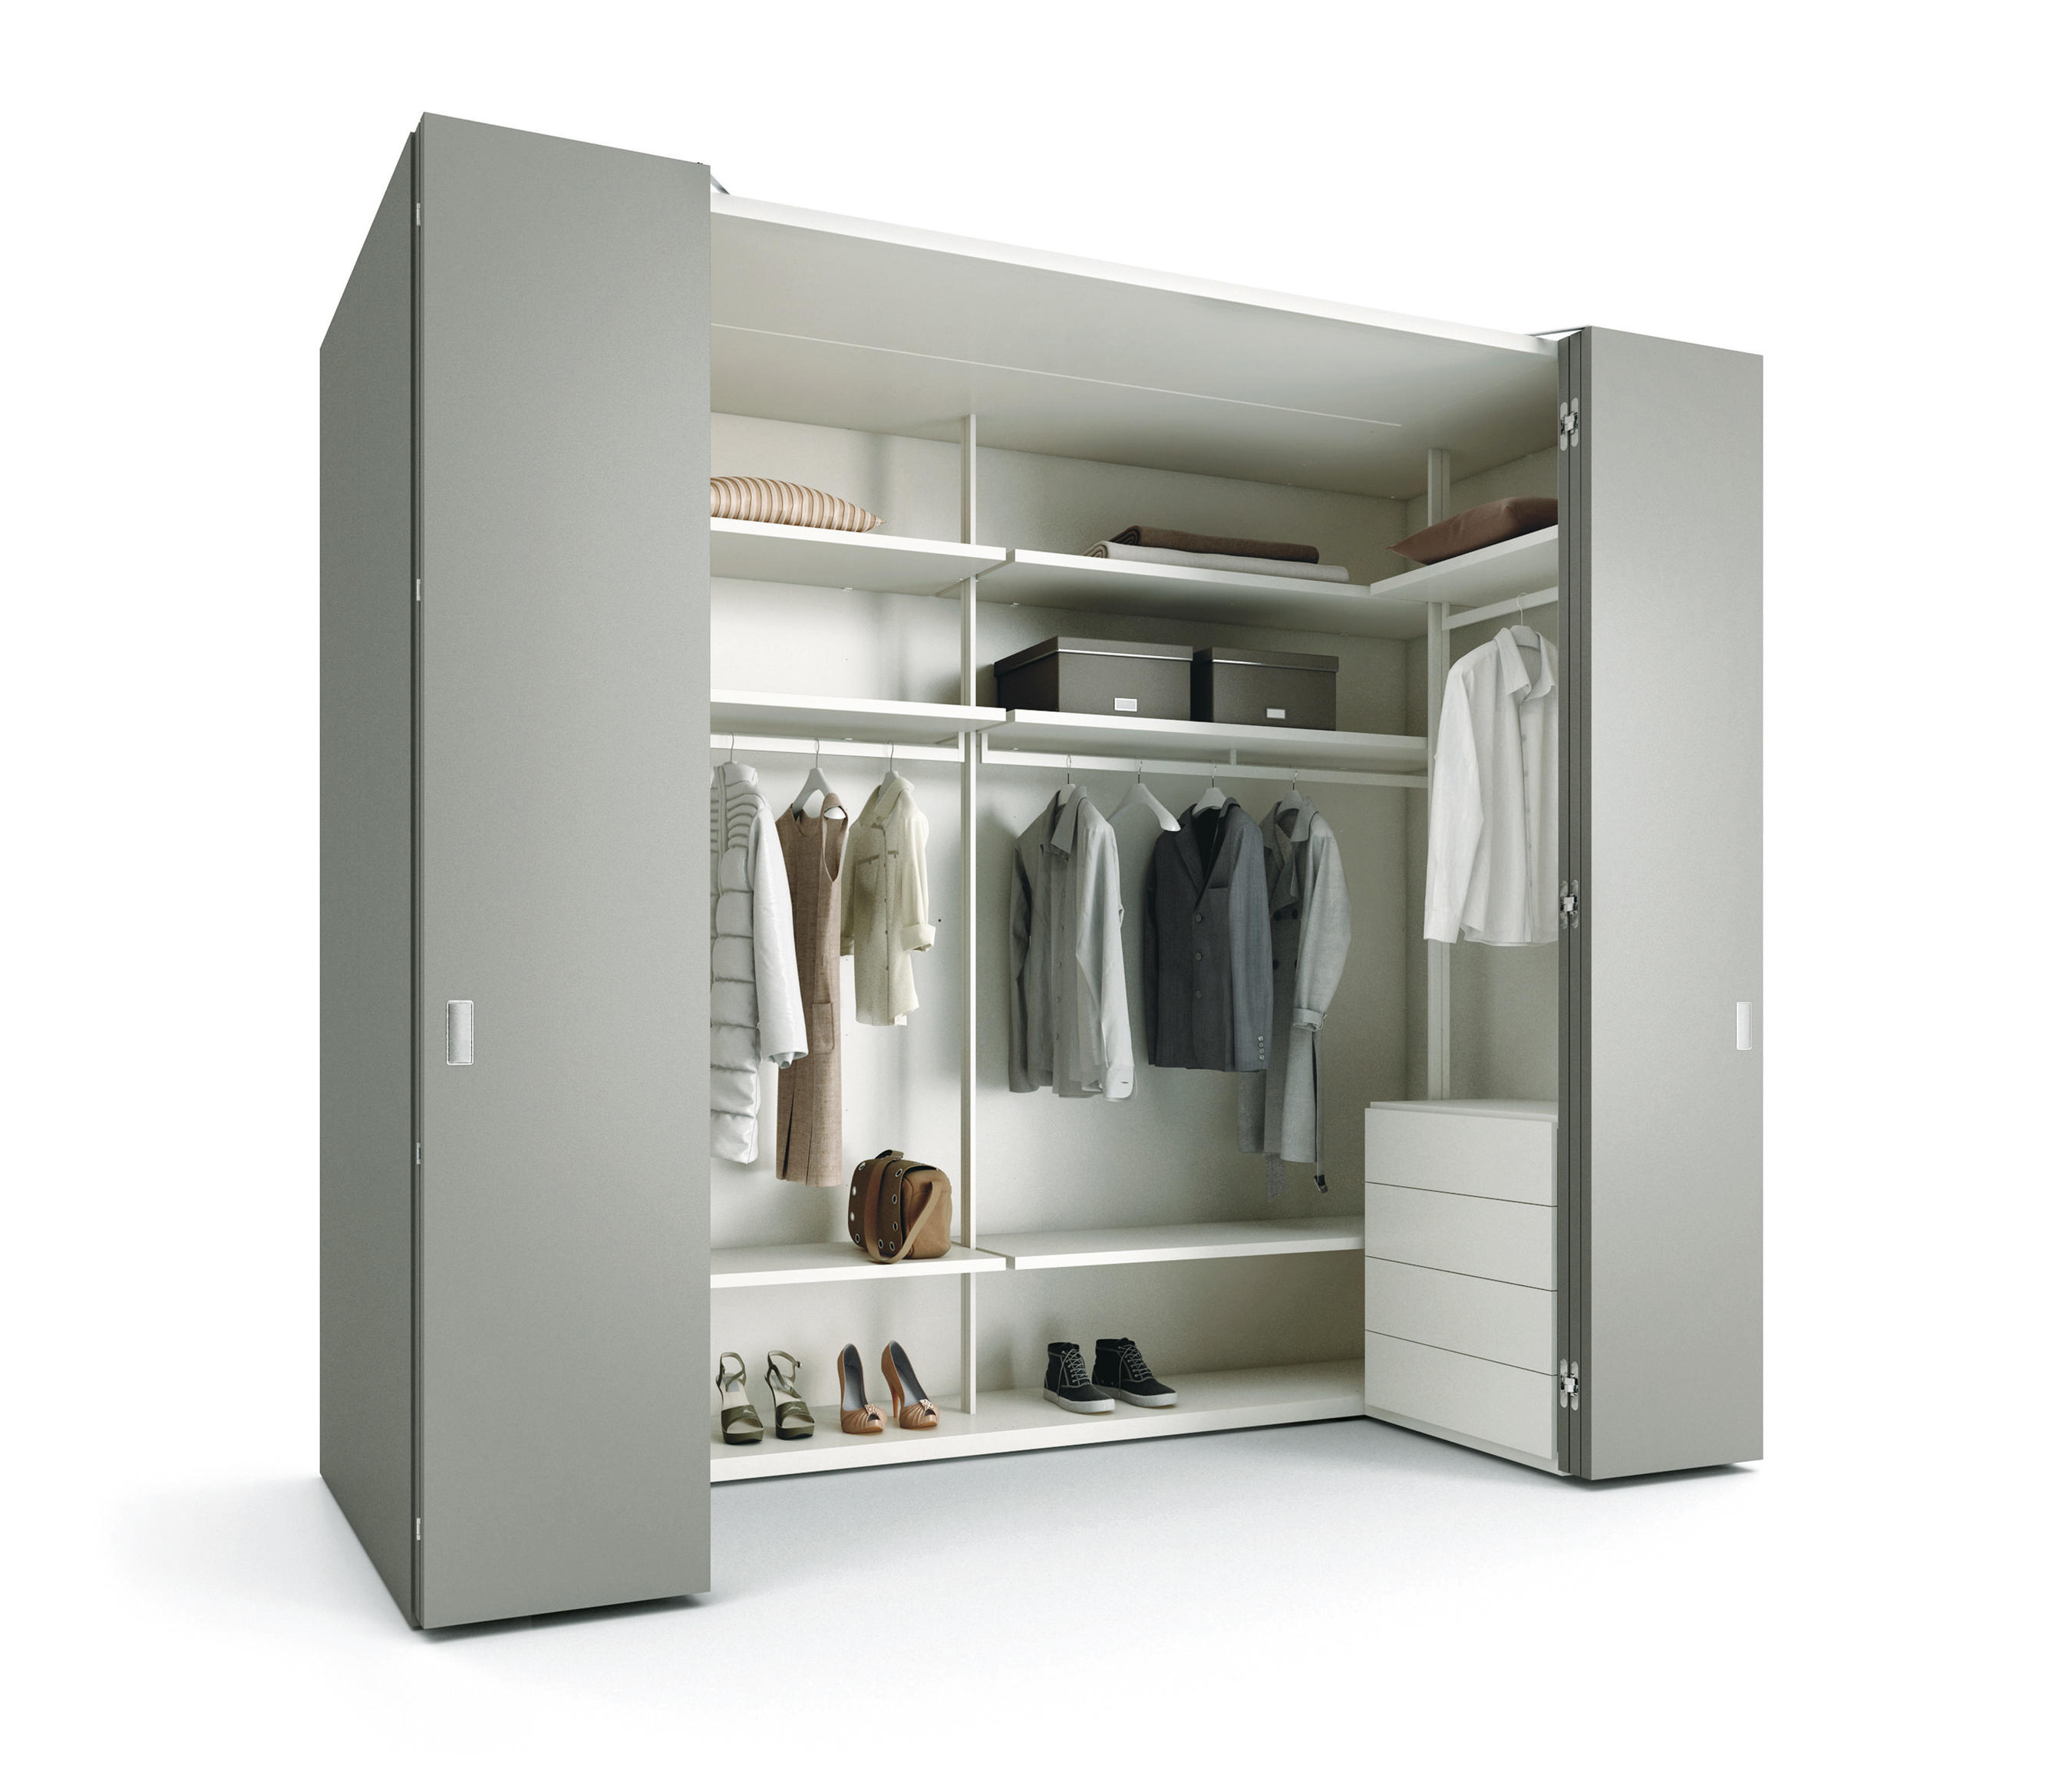 way closet walk made doors a wardrobes to design and in anyway have closets dress custom en be your ideal wardrobe measure products